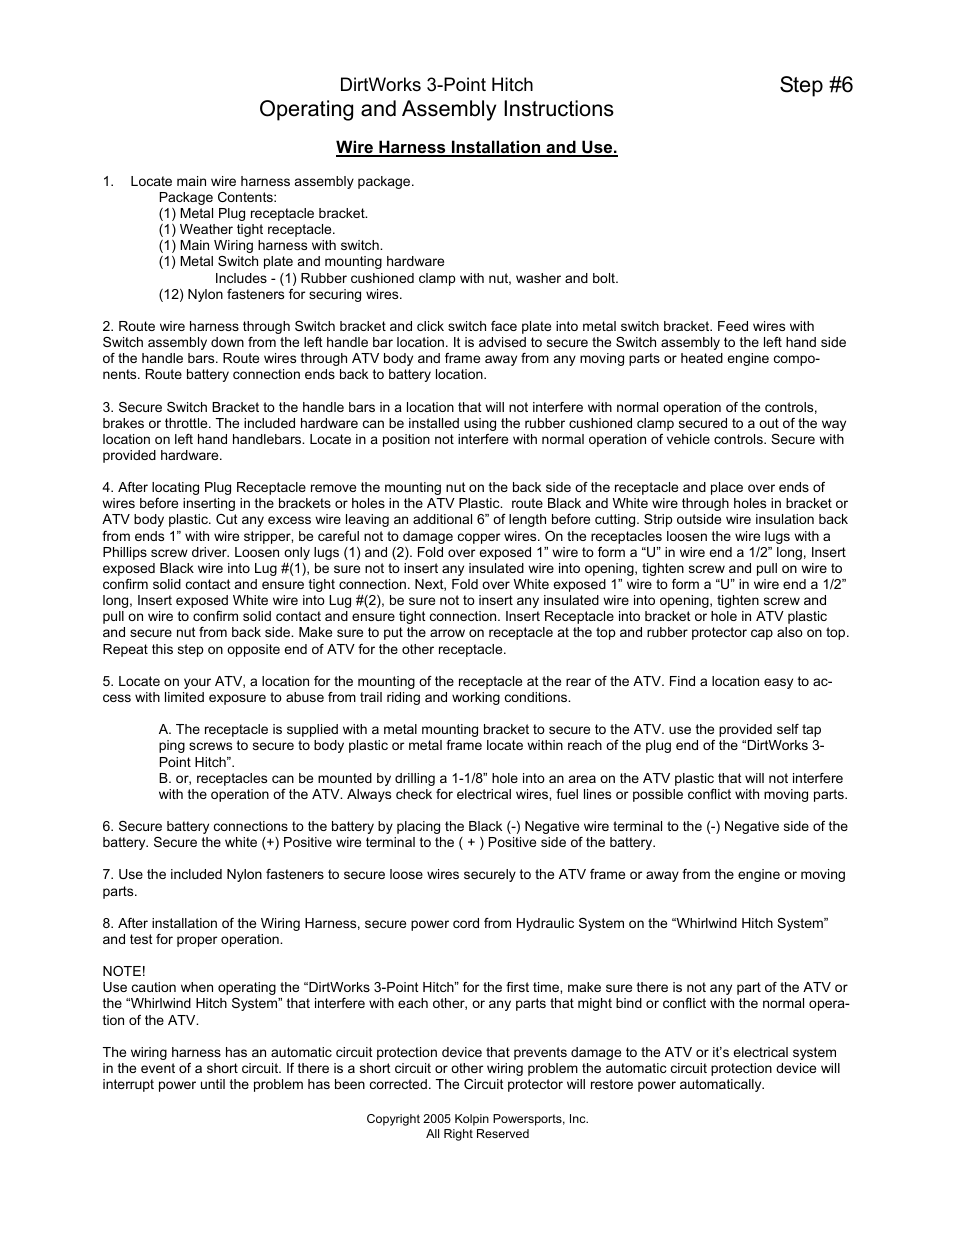 hight resolution of operating and assembly instructions step 6 kolpin whs03 user manual page 3 5